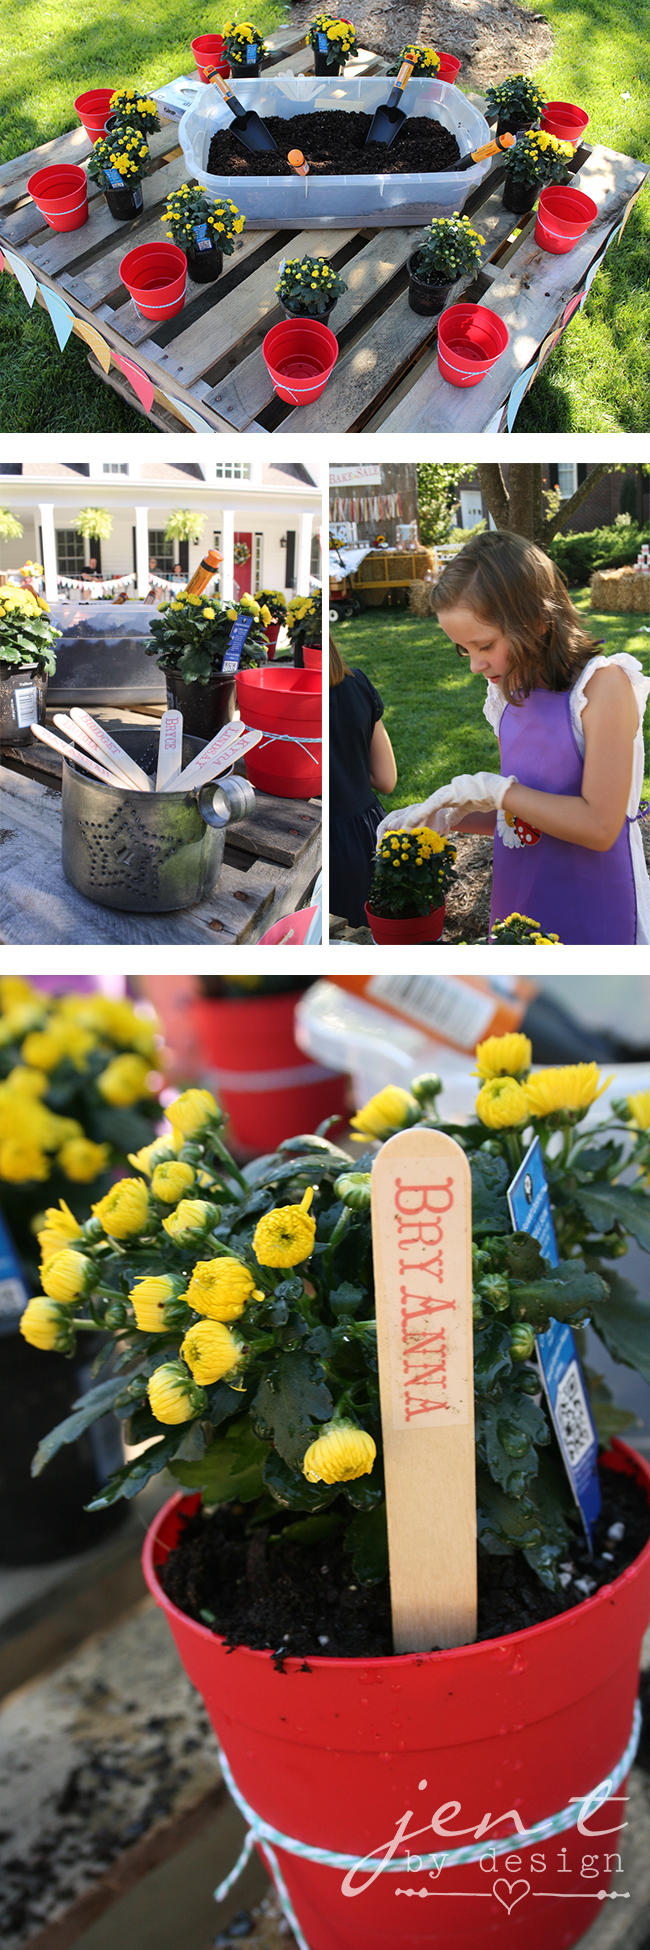 County Fair Party Activities - Jen T by Design.jpg